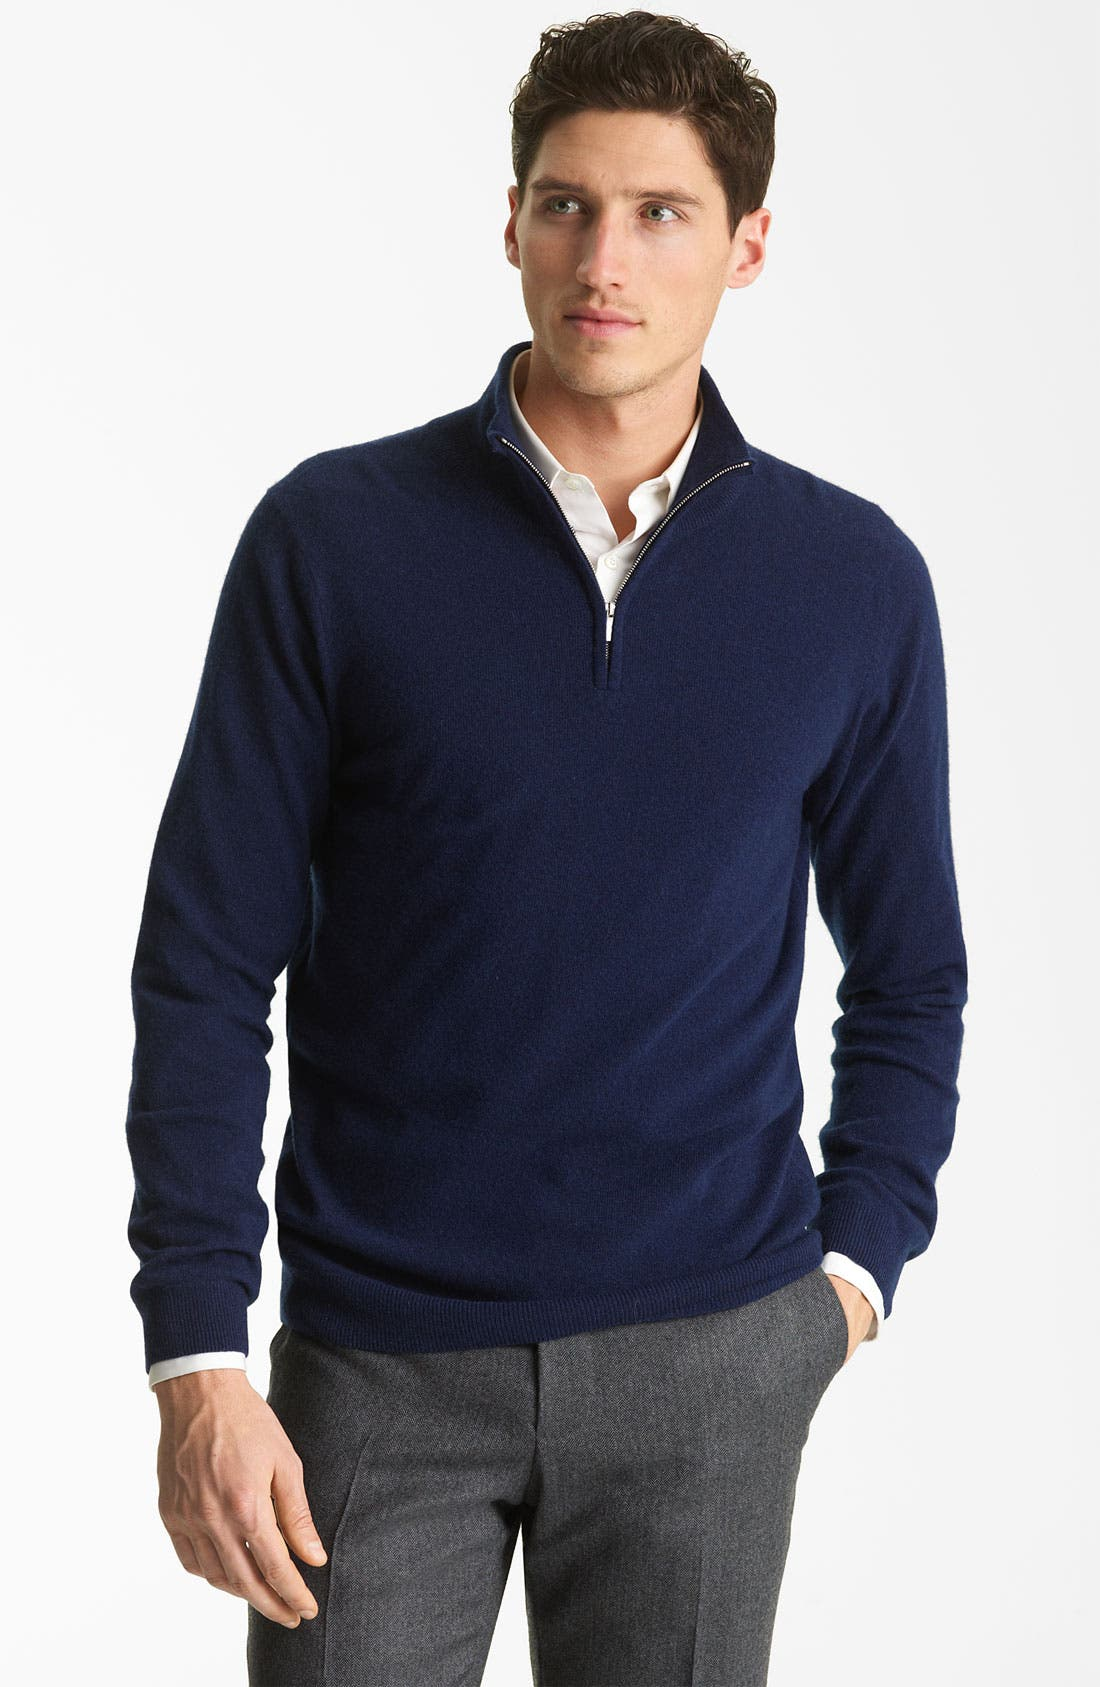 Alternate Image 1 Selected - Pringle of Scotland Zip Neck Sweater